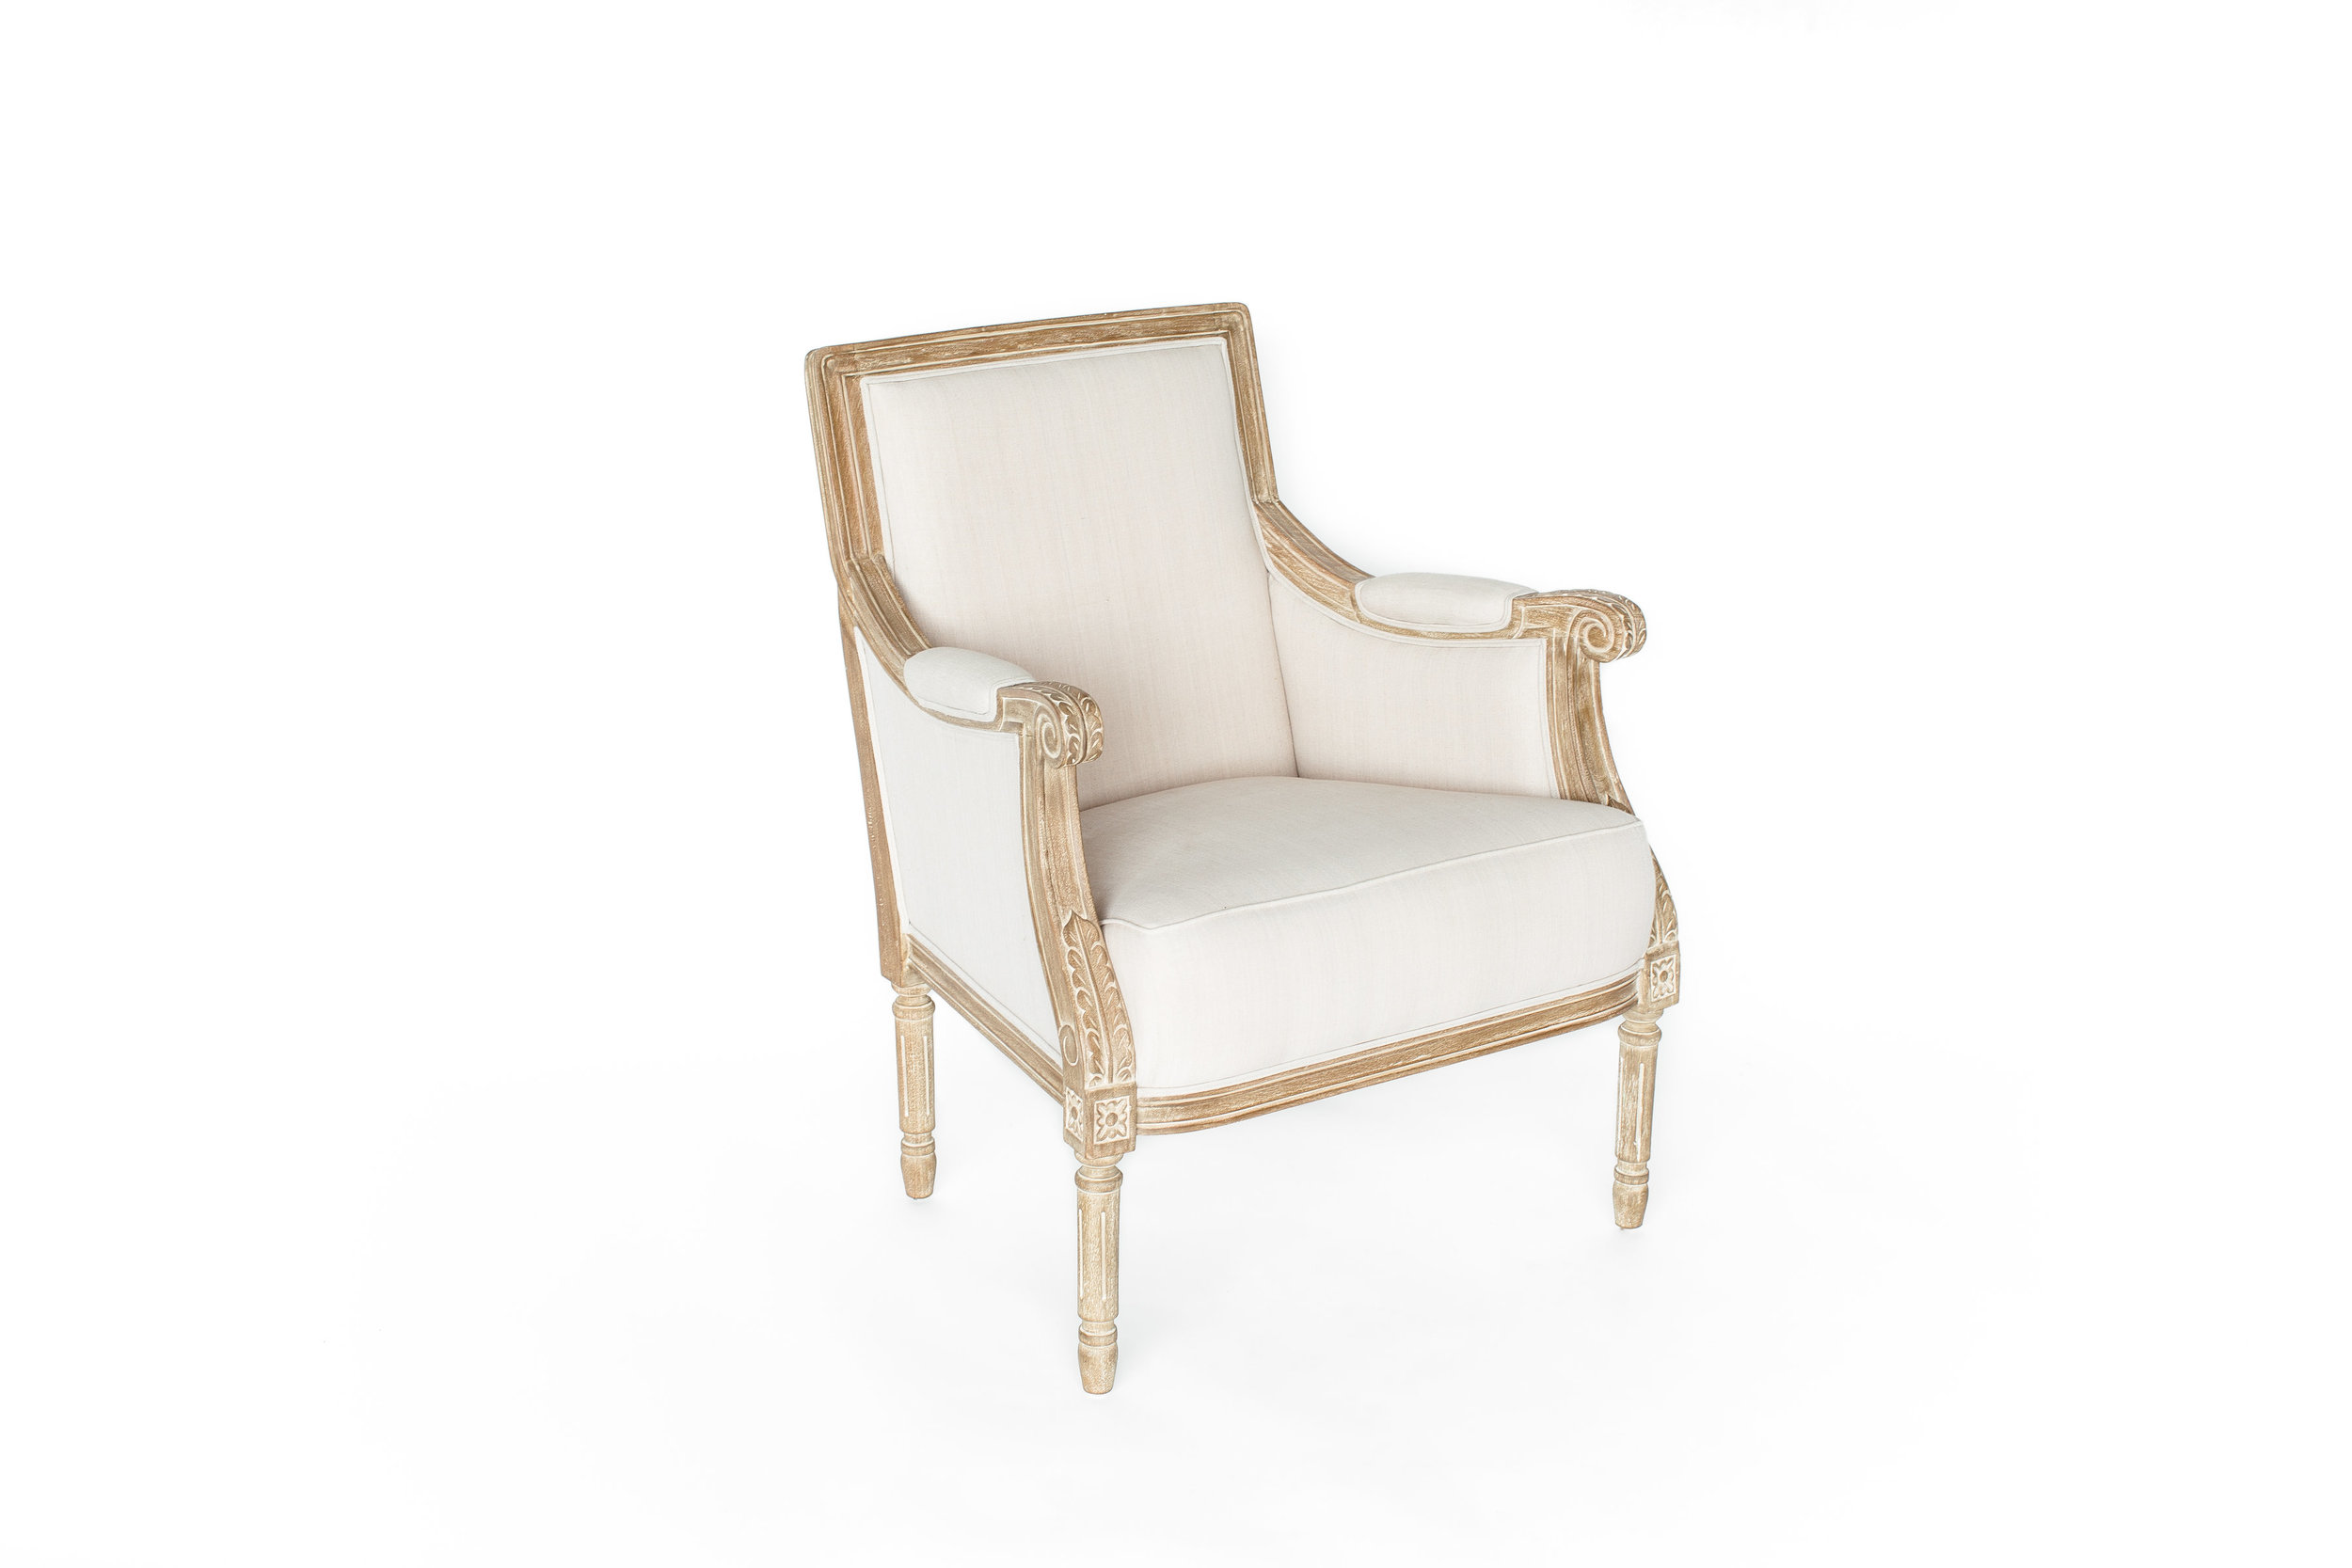 PROVENCE CHAIRS